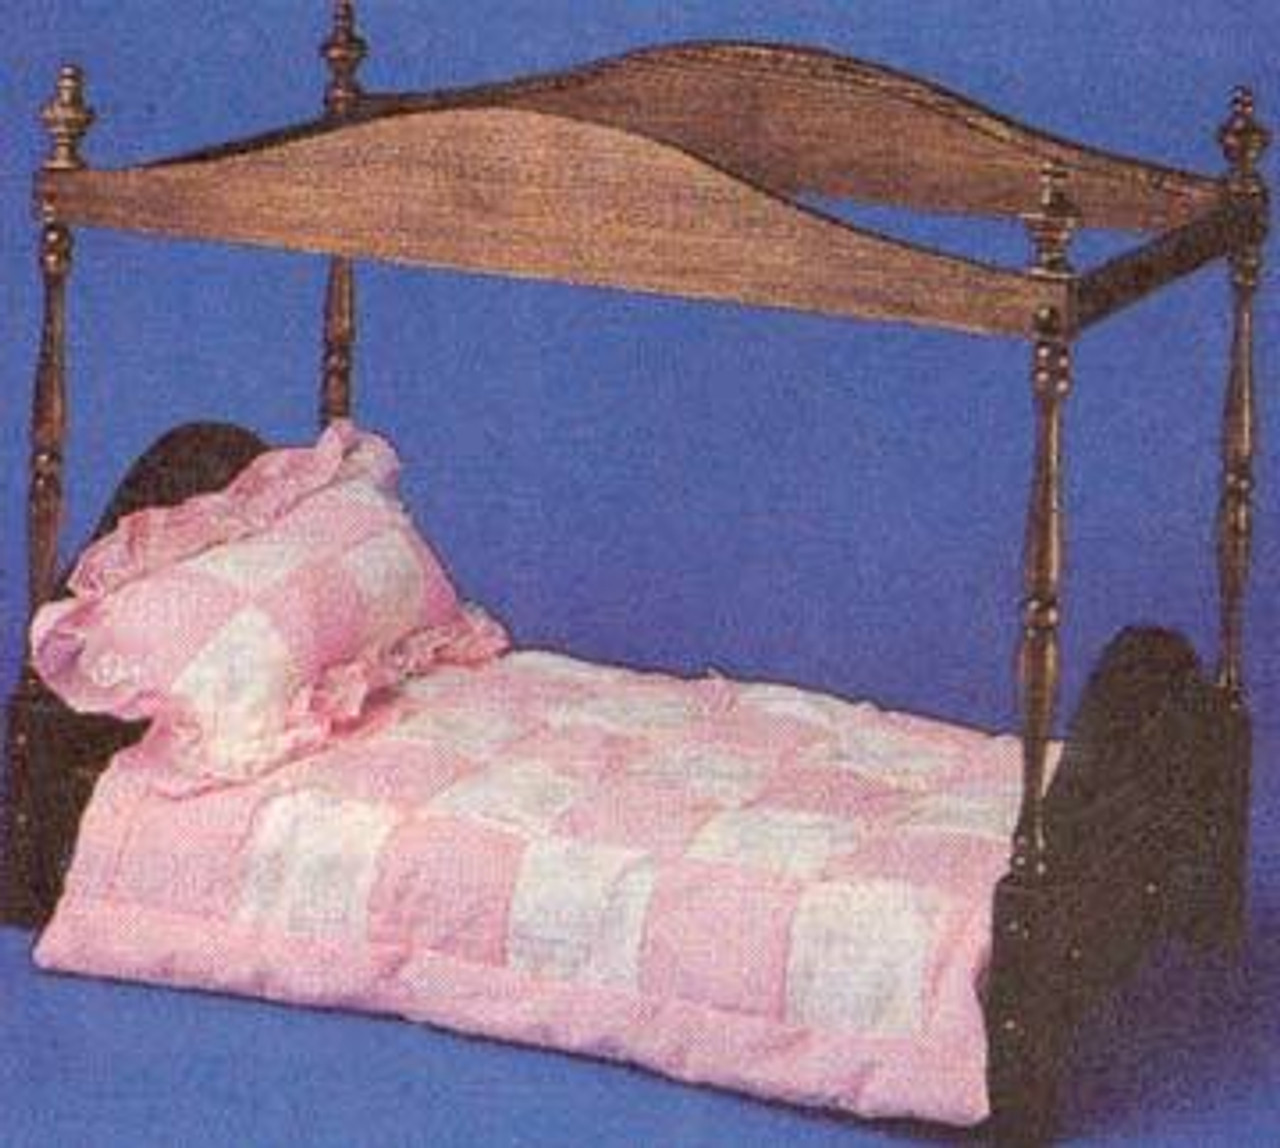 Cherry Tree Toys Large Poster Bed Plan